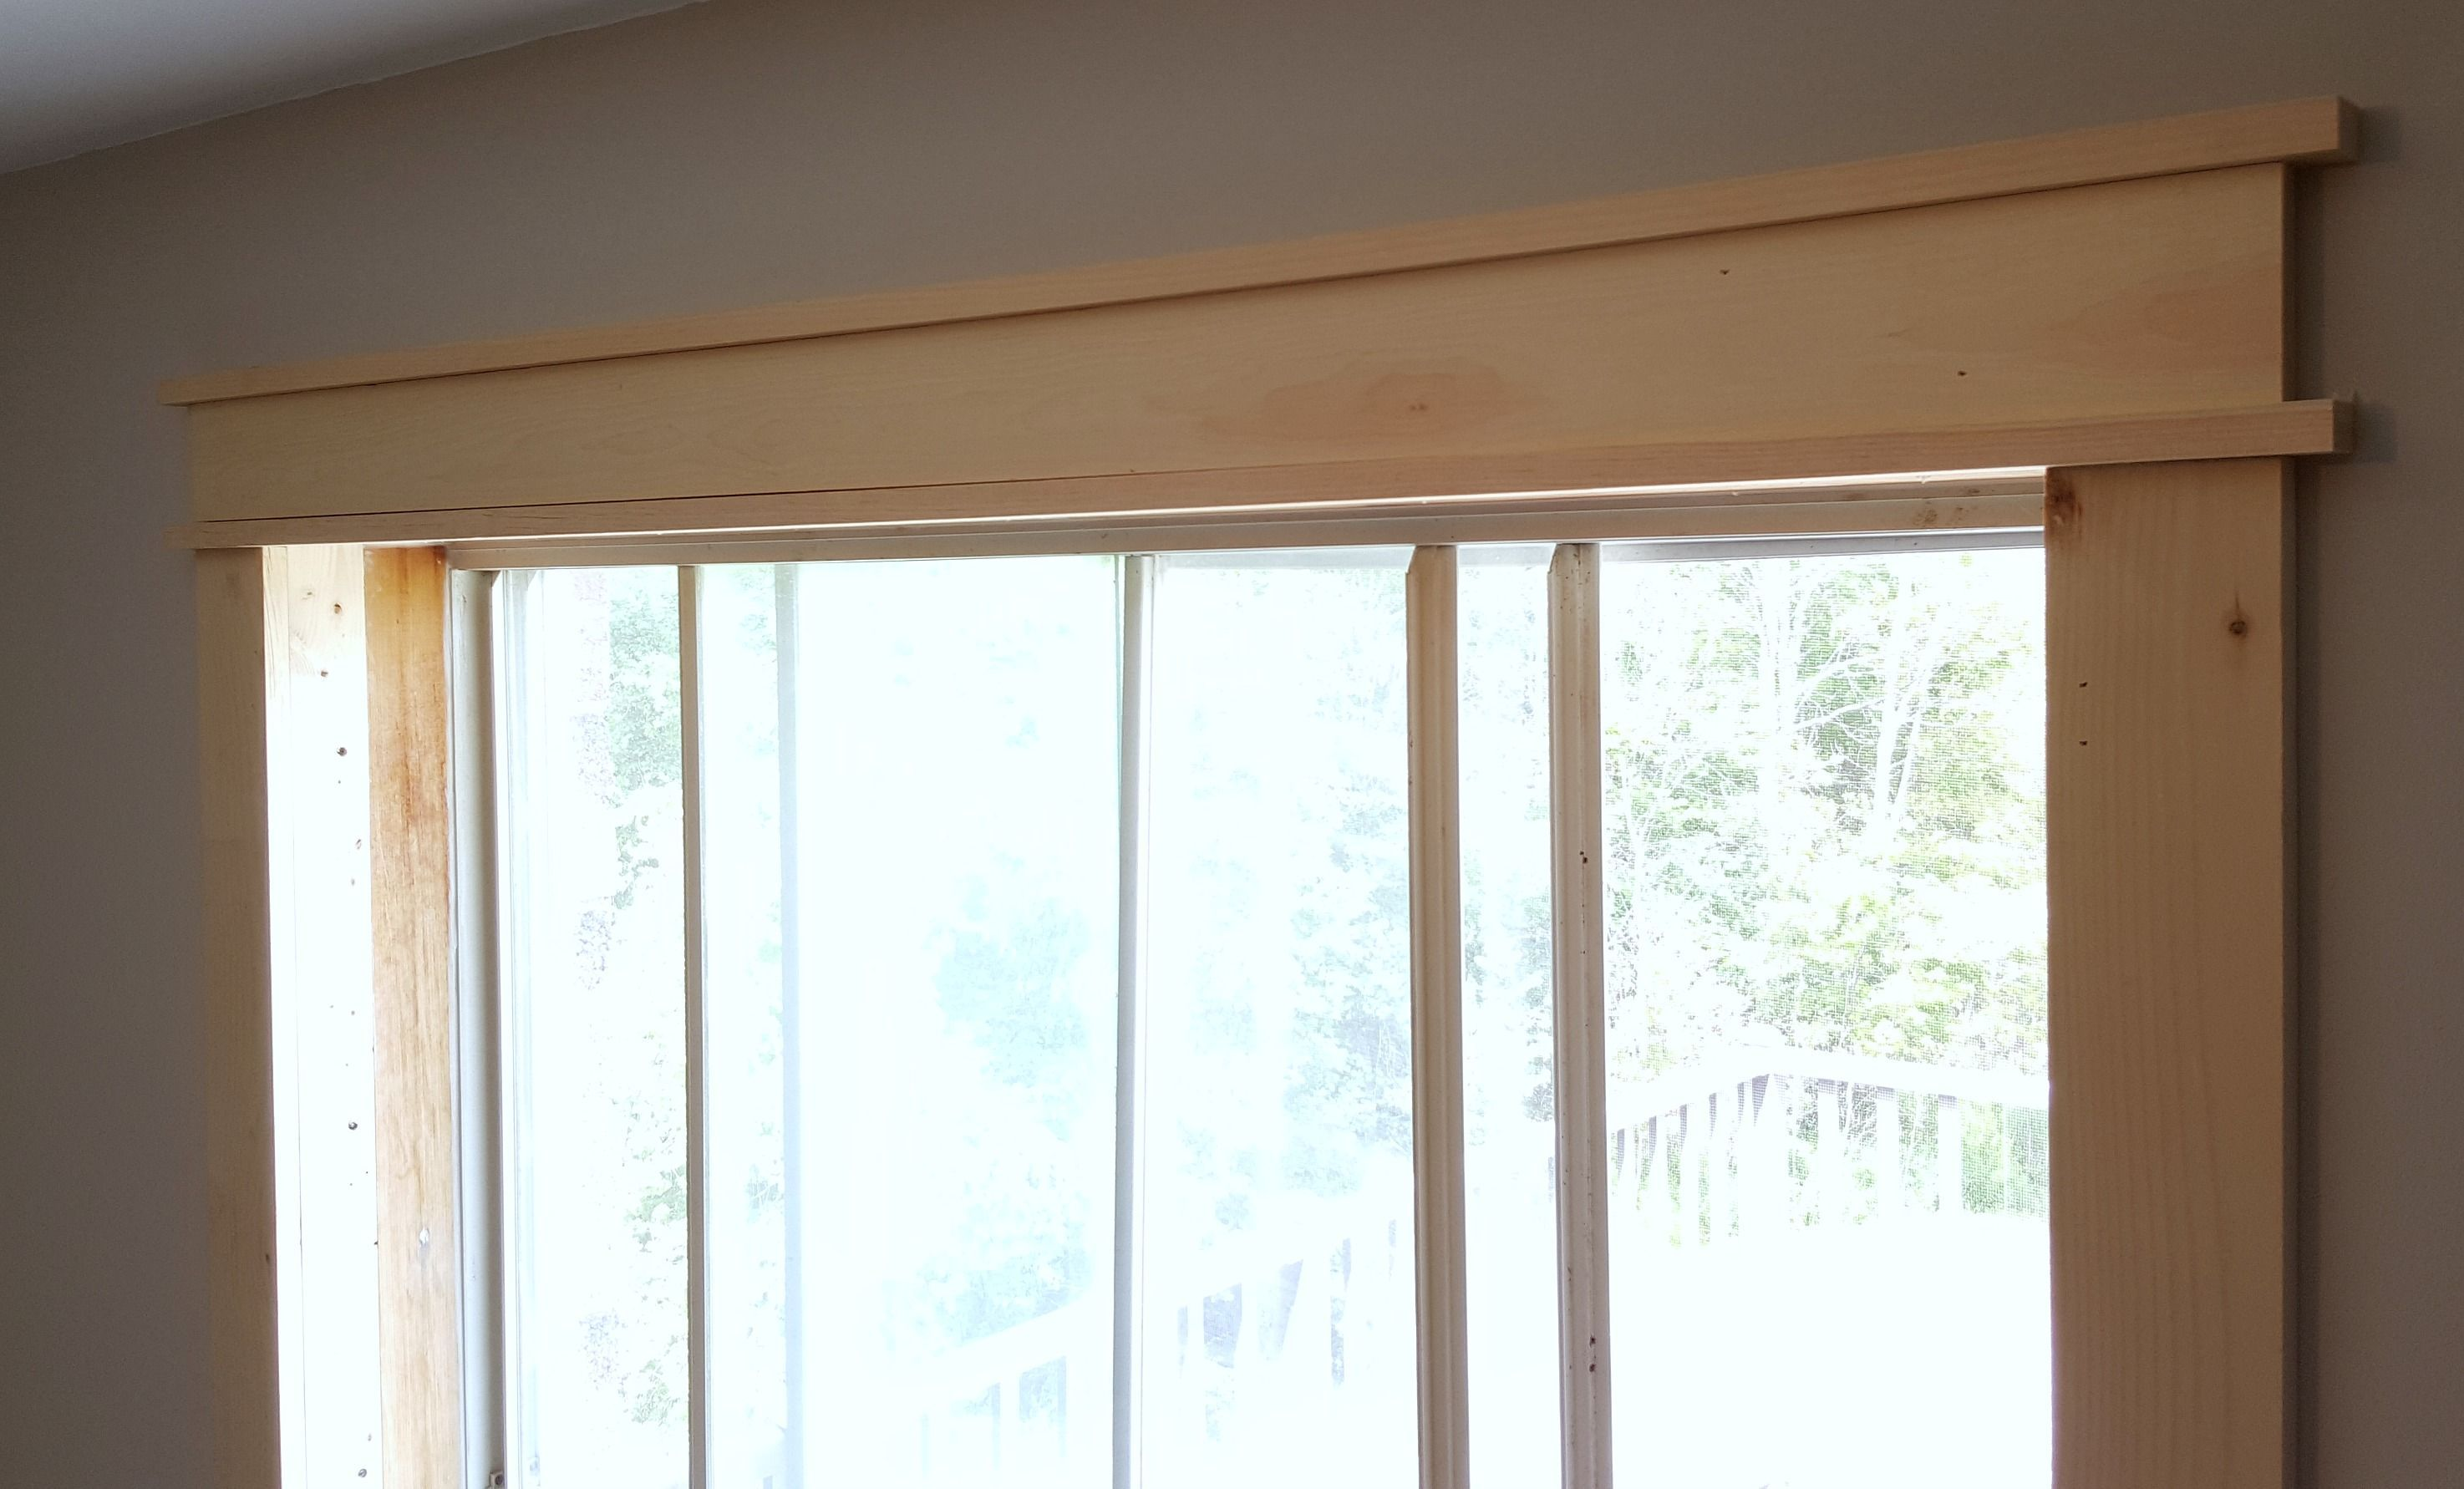 Diy modern easy craftsman window trim craftsman window trim